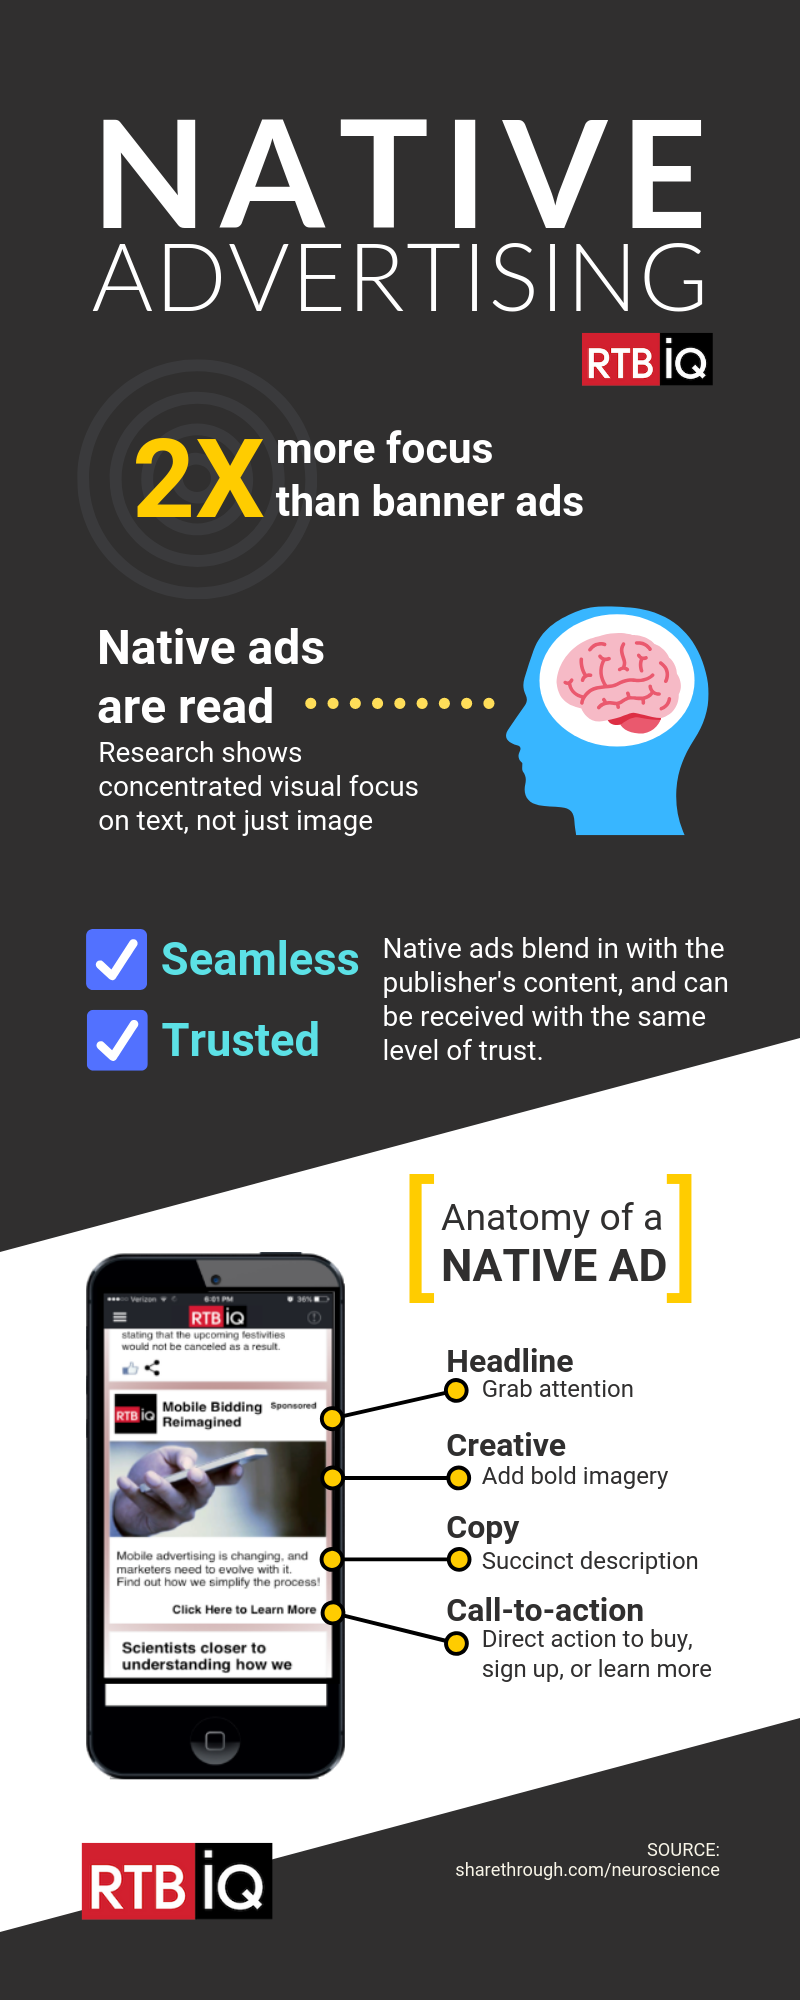 """Infographic with text overlay """"native advertising- 2x more focus than banner ads- native ads are read, research shows concentrated visual focus on text, not just image- seamless, trusted- native ads blend in with the publisher's content and can be received with the same level of trust-anatomy of a native ad- headline (grab attention)- creative (add bold imagery)- copy (succinct description)- call-to-action (direct action to buy, sign-up, or learn more"""